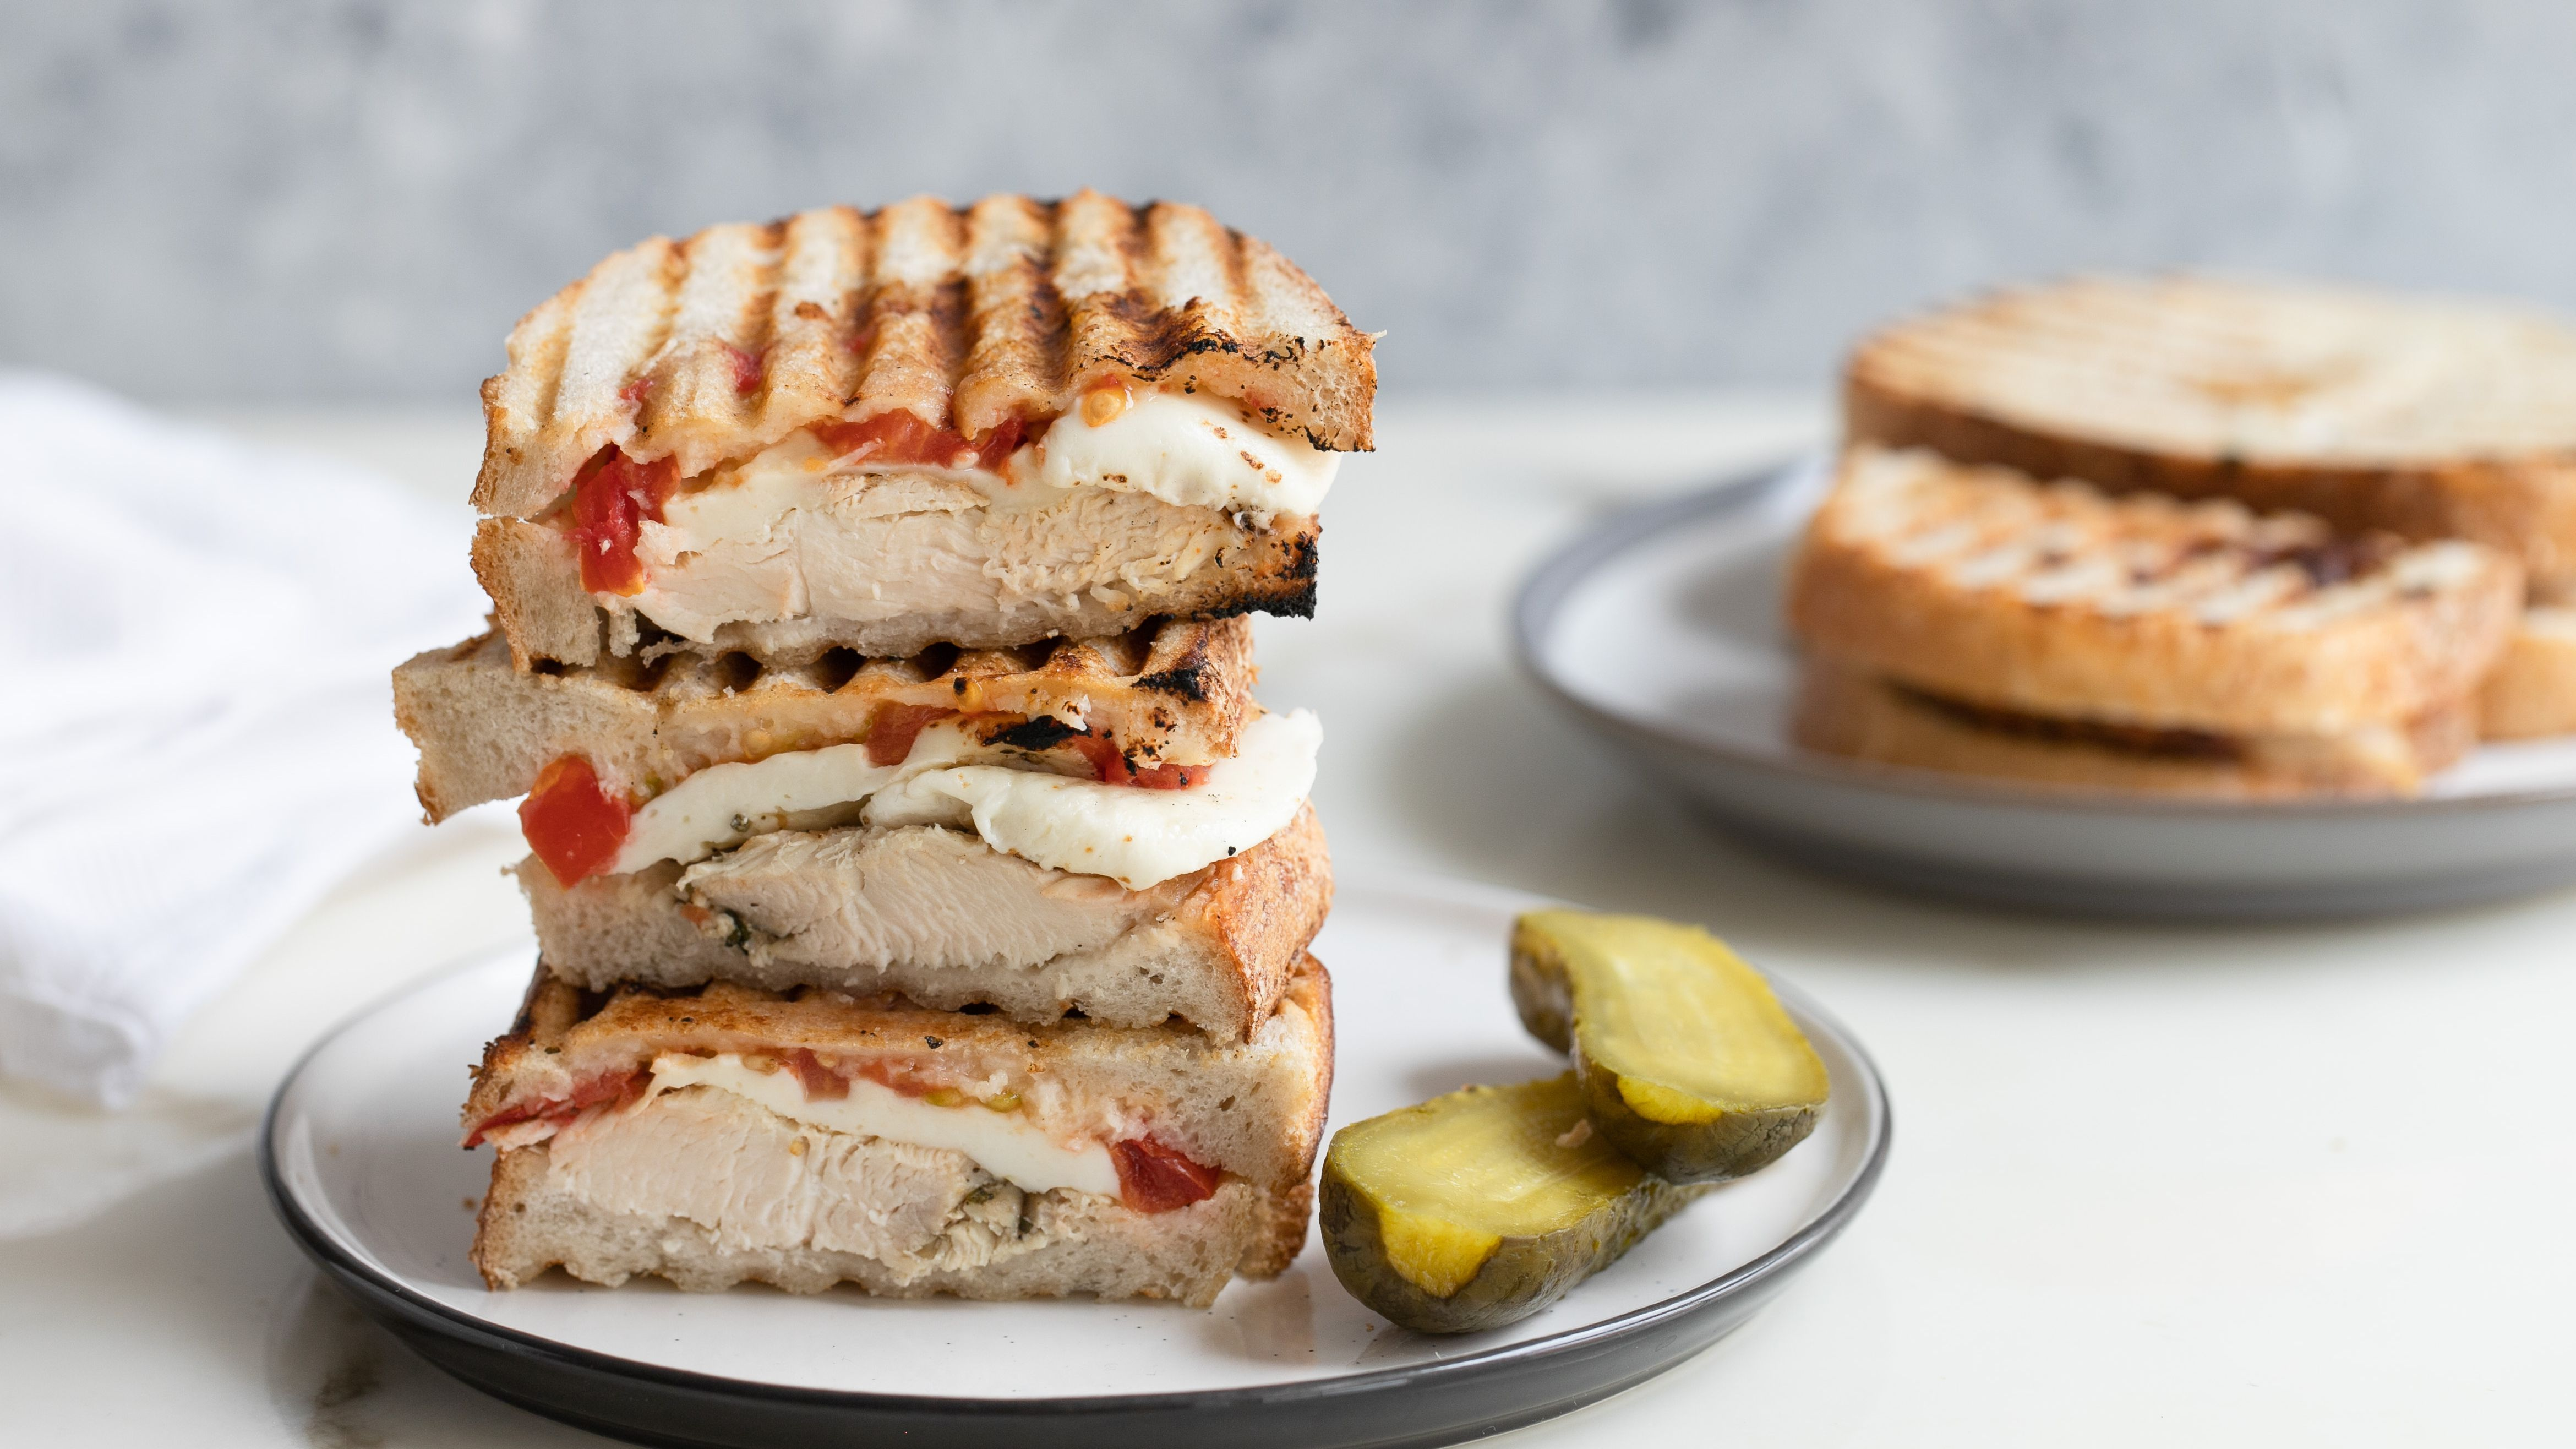 Grilled Chicken And Mozzarella Panini Recipe